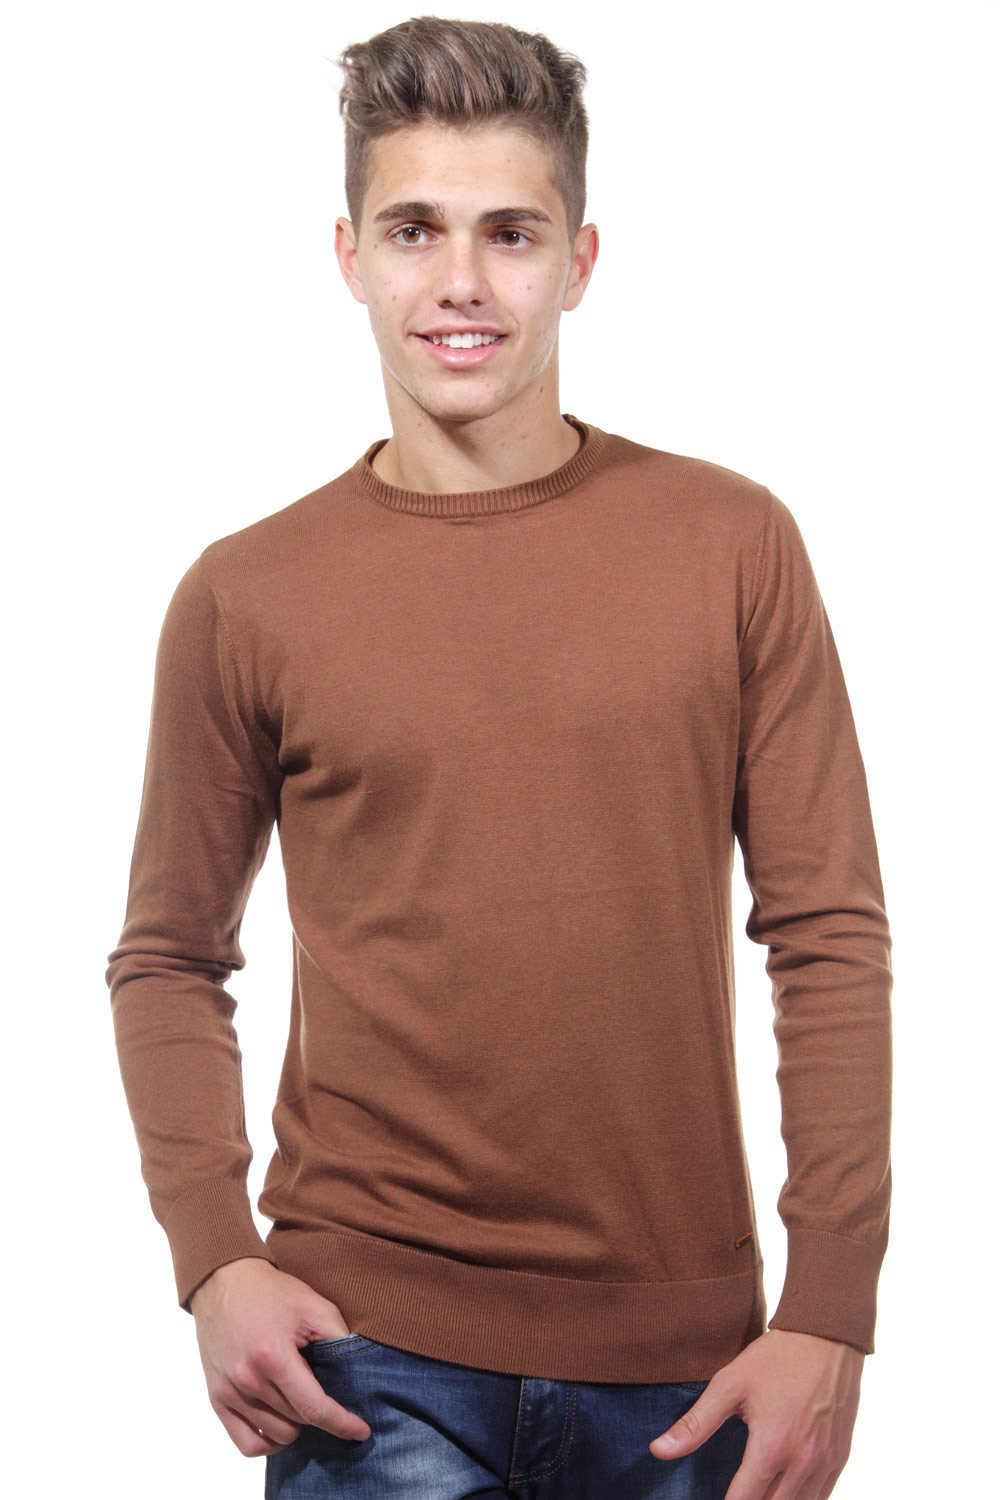 XINT jumper r-neck slim fit at oboy.com